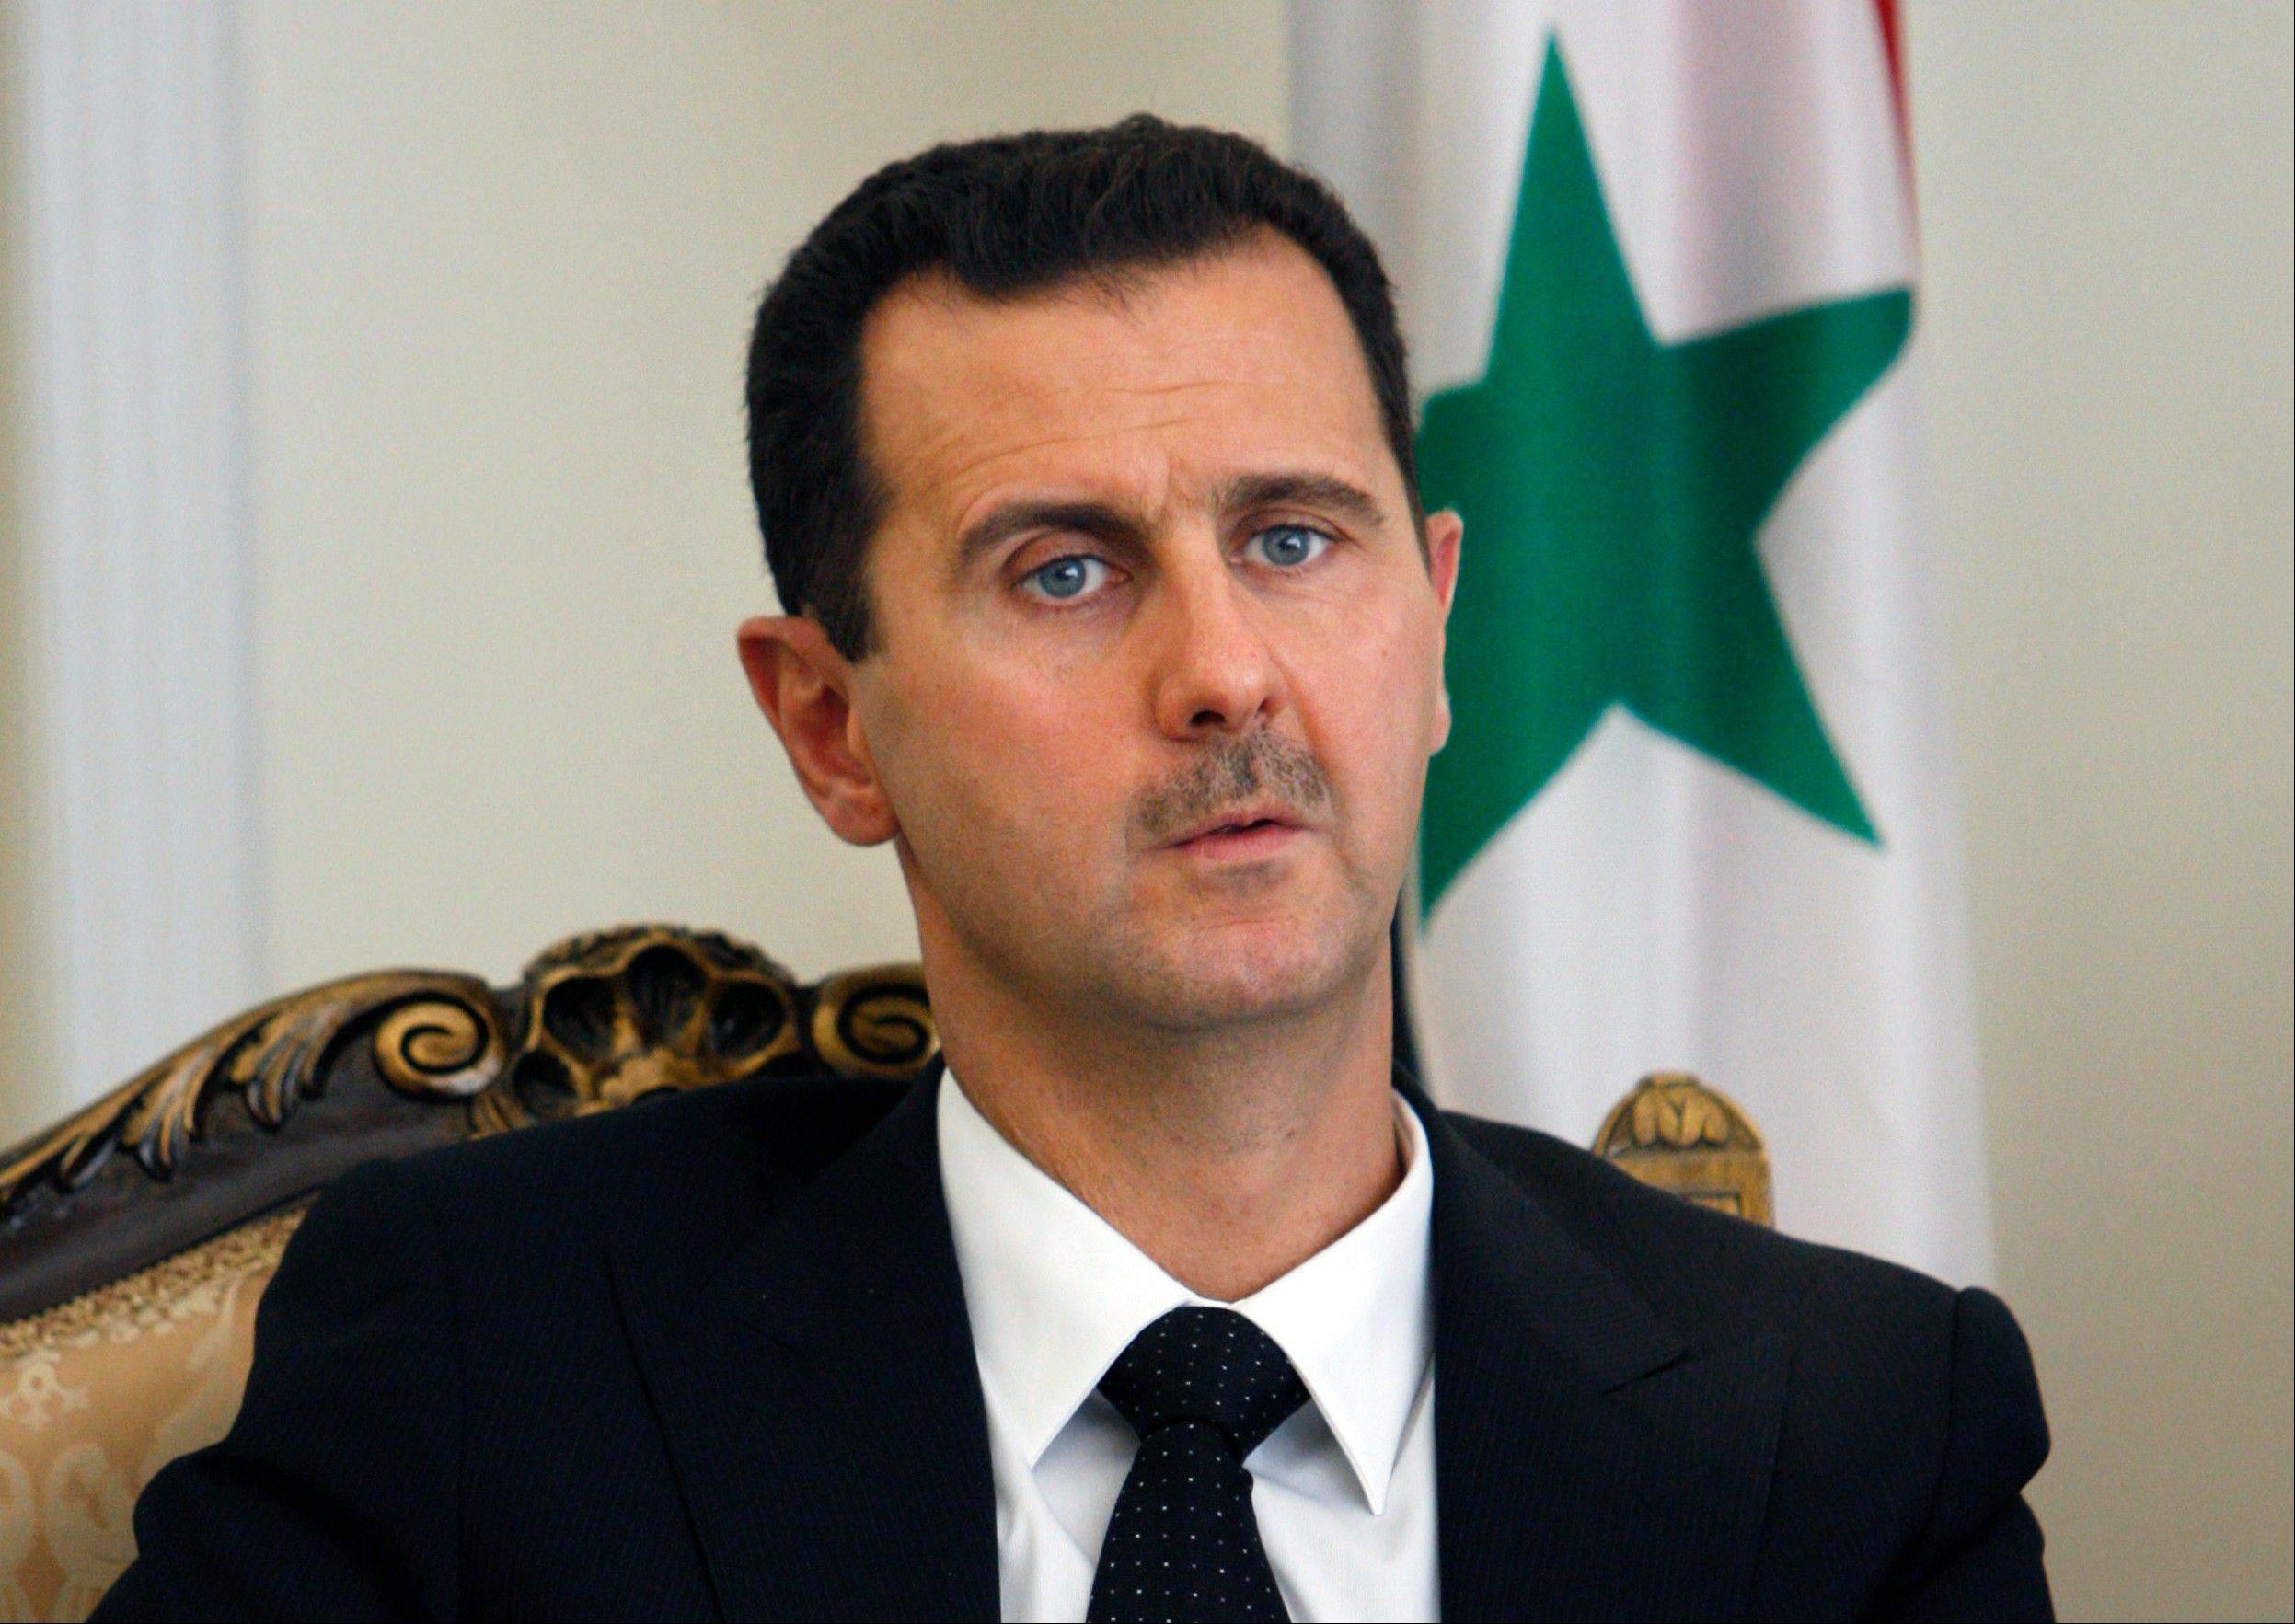 Syrian President Bashar Assad has been quoted by a Lebanese TV as saying the first shipment of Russian air defense missiles has arrived in his country. Al-Manar TV, owned by the militant Hezbollah group, is to air an exclusive interview with Assad later Thursday, May 30, 2013.